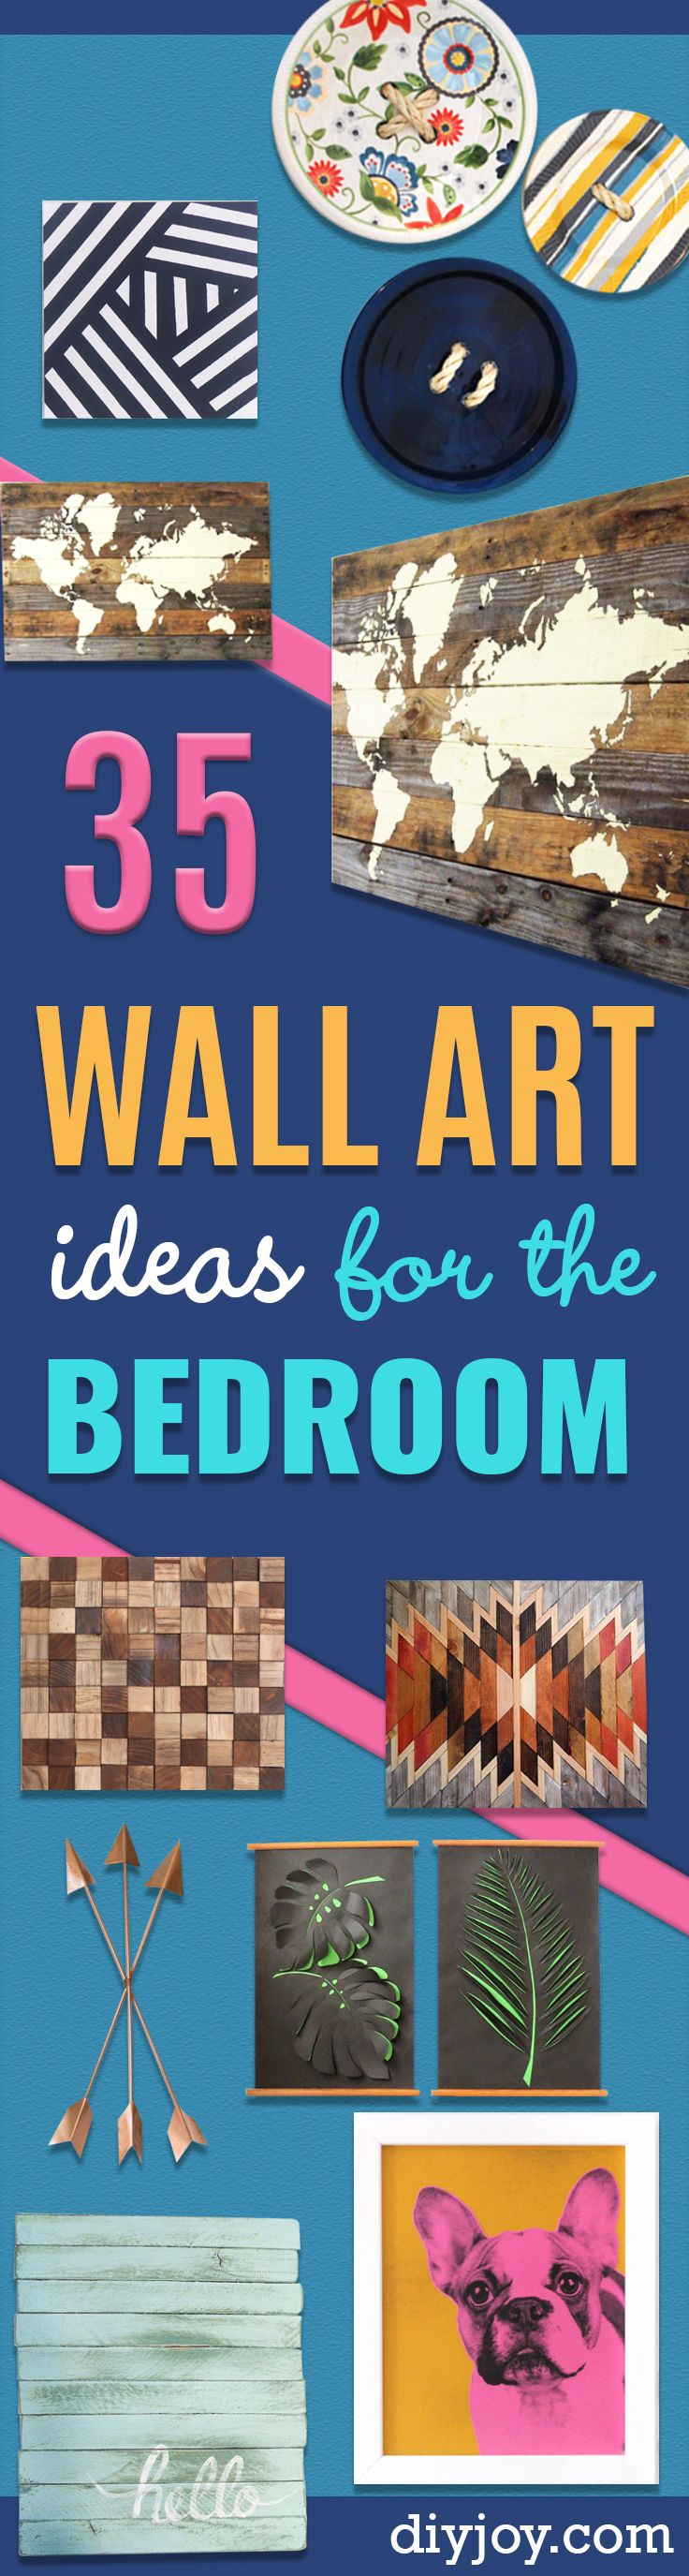 31 best diy hazlo t mismo images on pinterest home ideas good 35 wall art ideas for the bedroom solutioingenieria Image collections